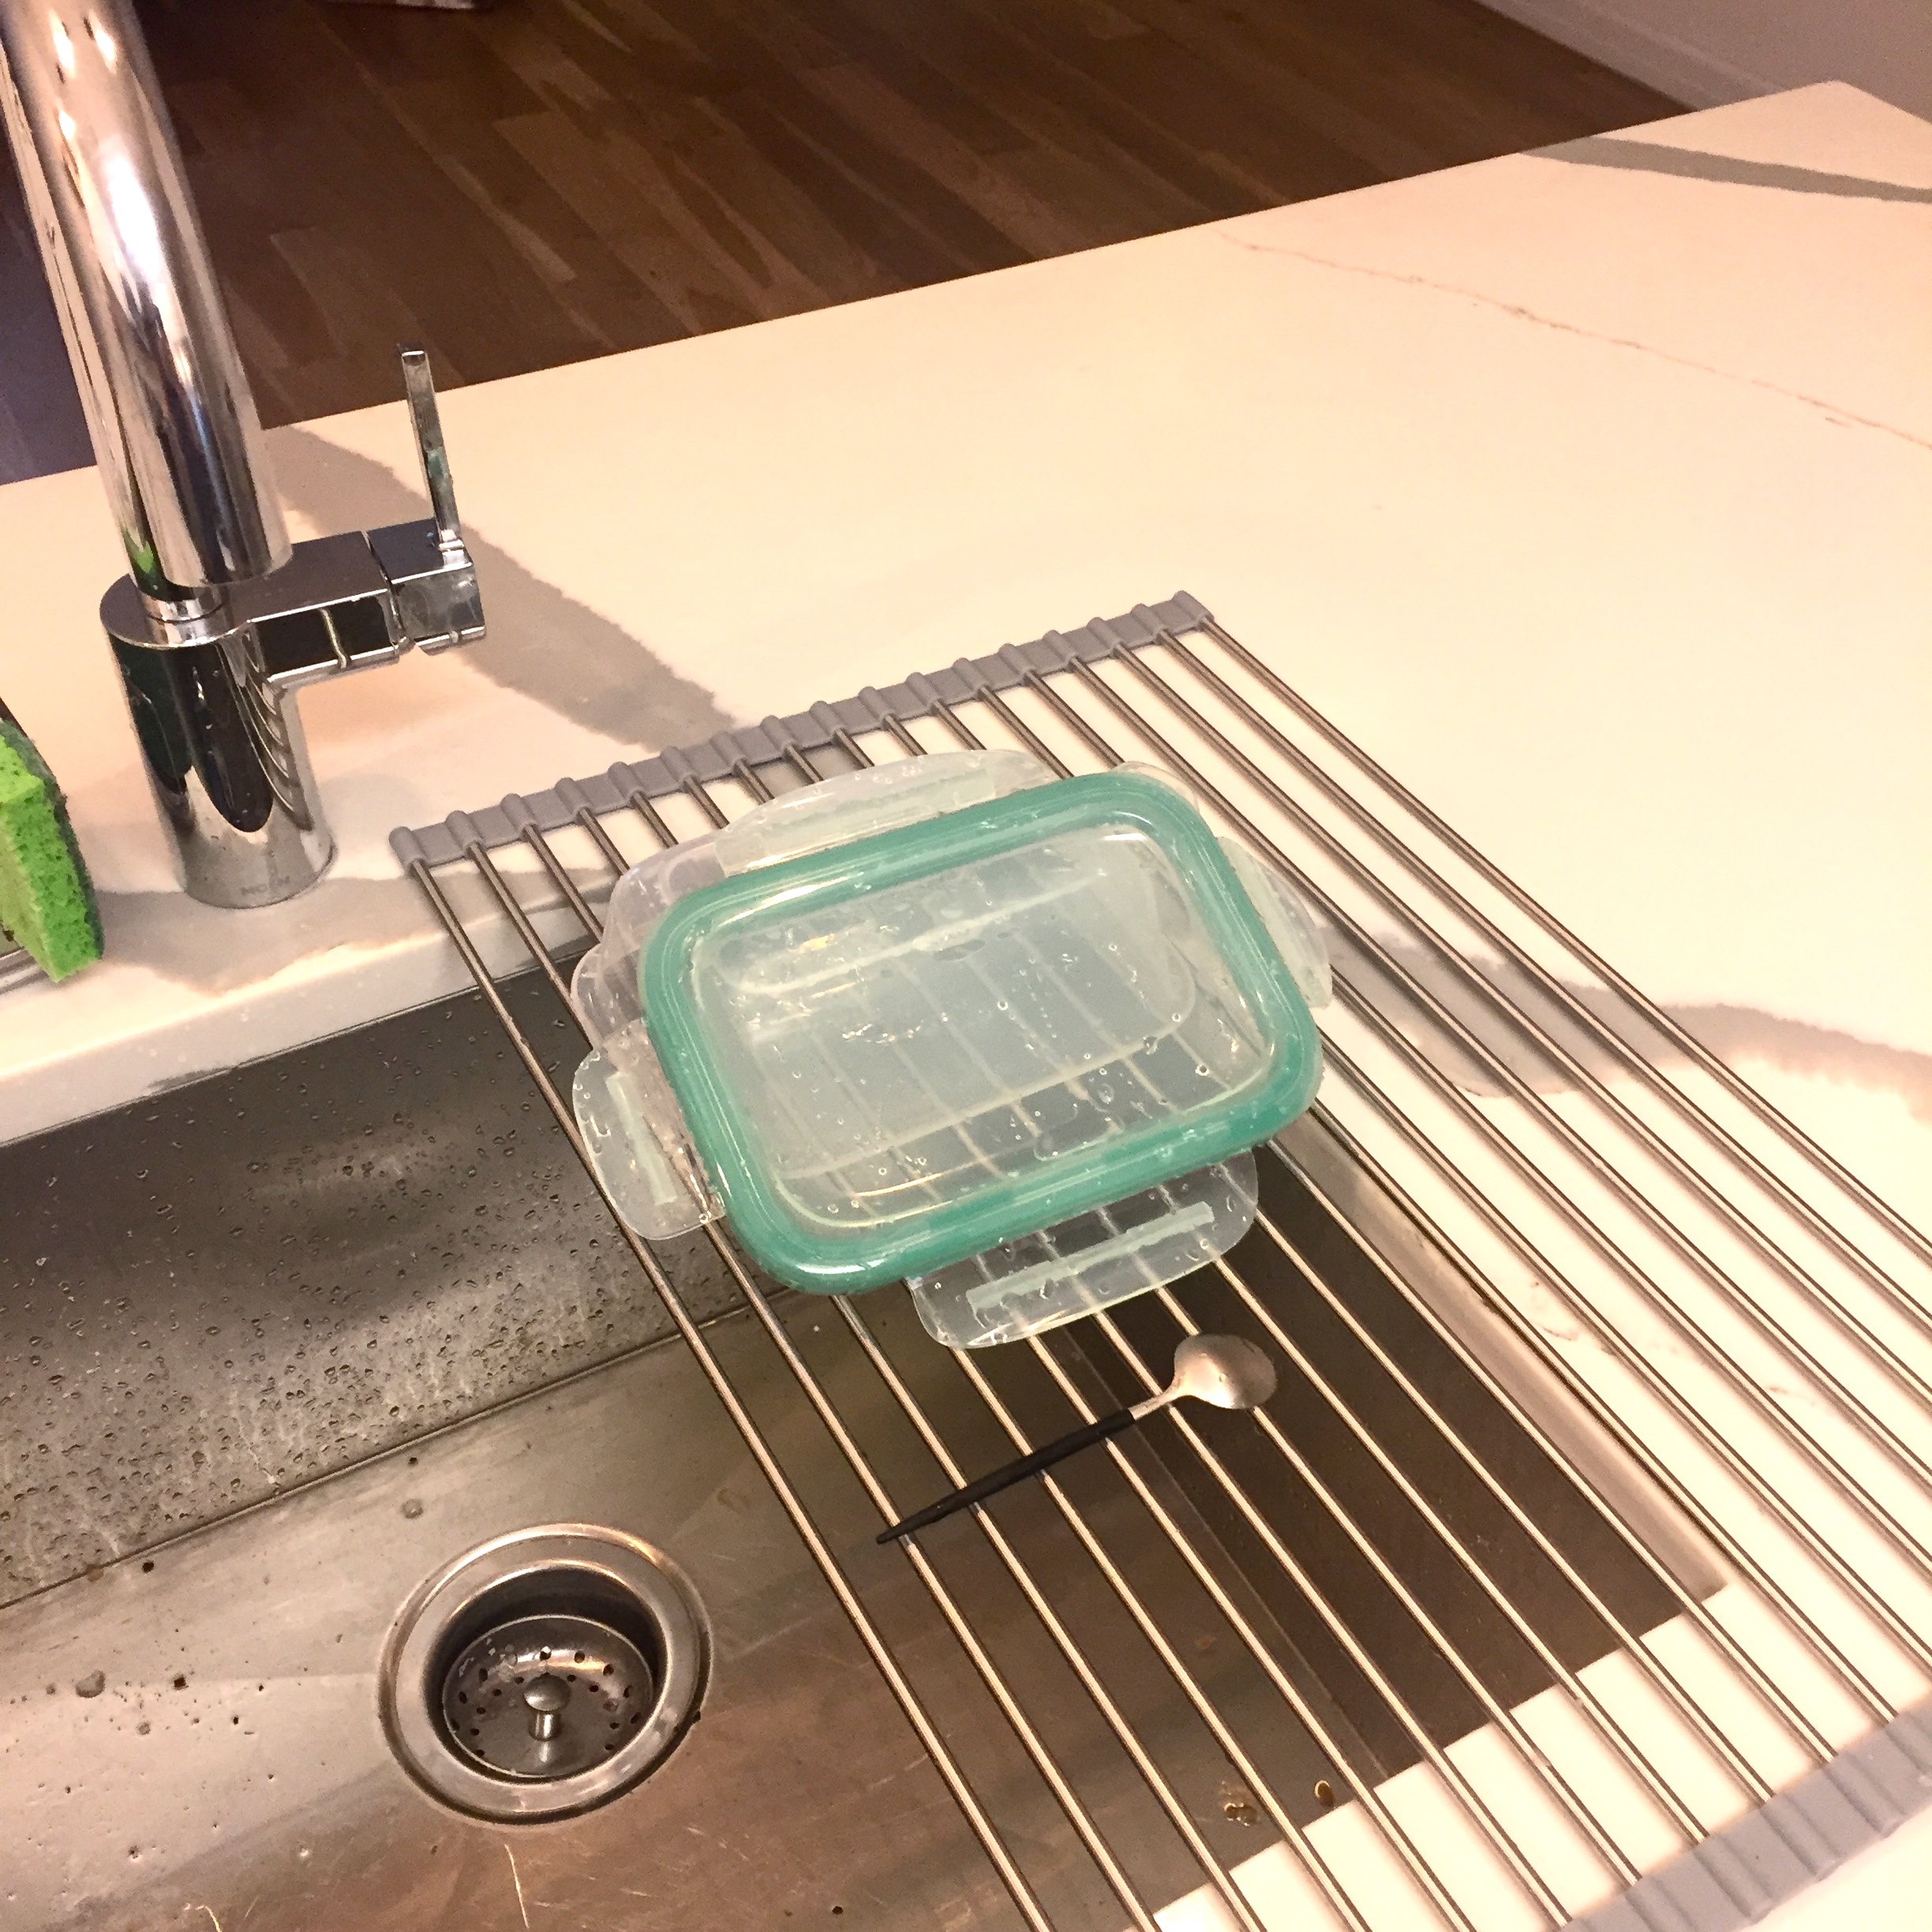 The Magical Dish Drying Rack - There are few things worse than a drying rack taking up all of your counter space (right??). This guy sits over the sink, can be rolled up and put away, and is super attractive! I'm sweating from excitement.